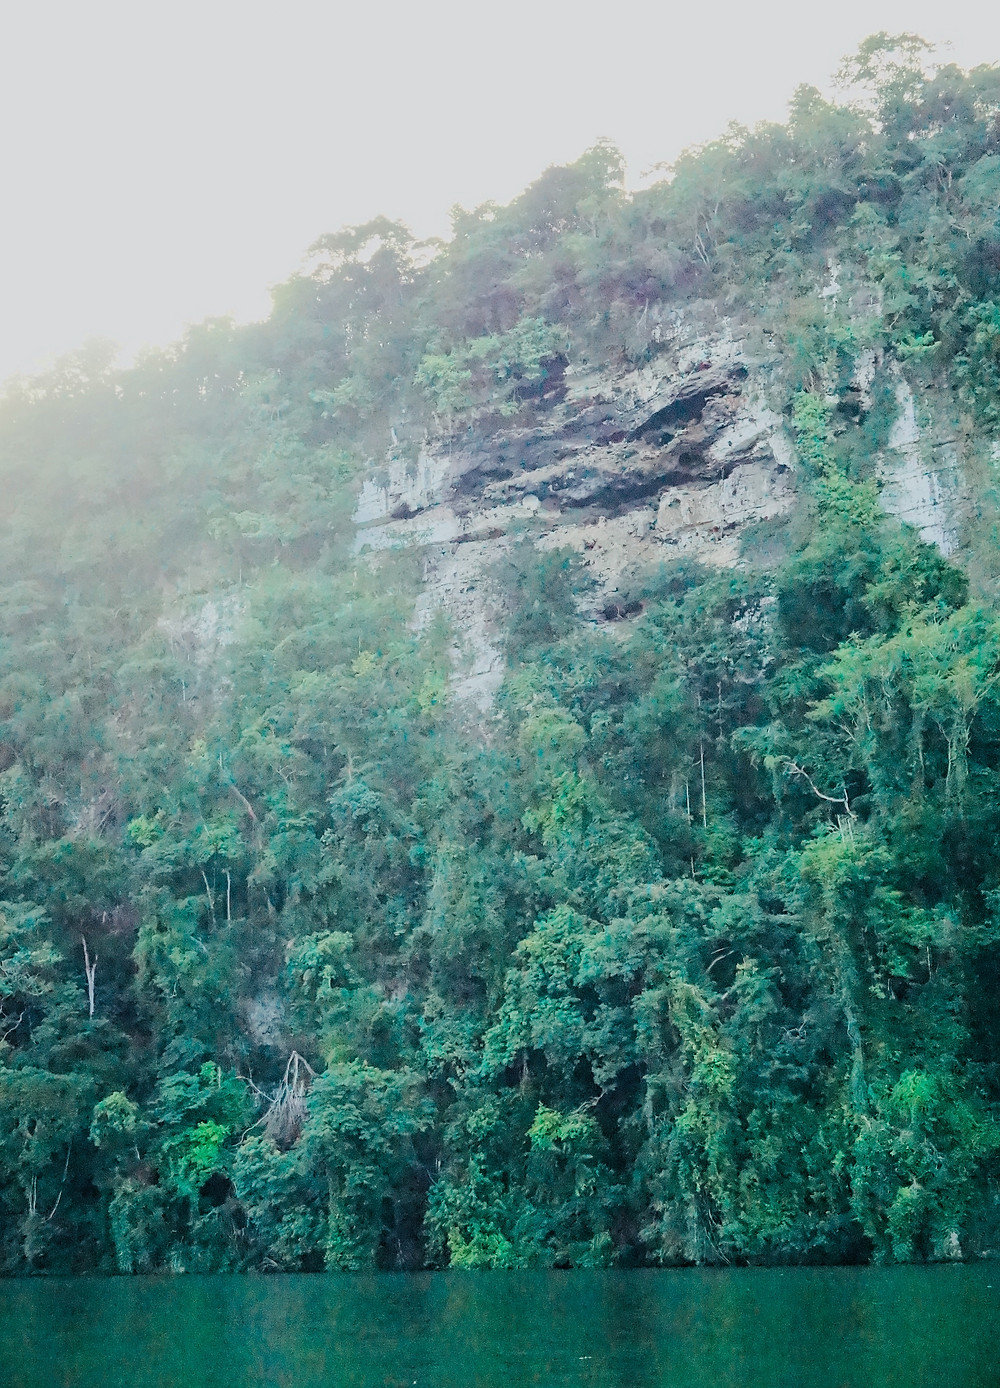 Lush canyon walls of the Rio Dulce, Guatemala